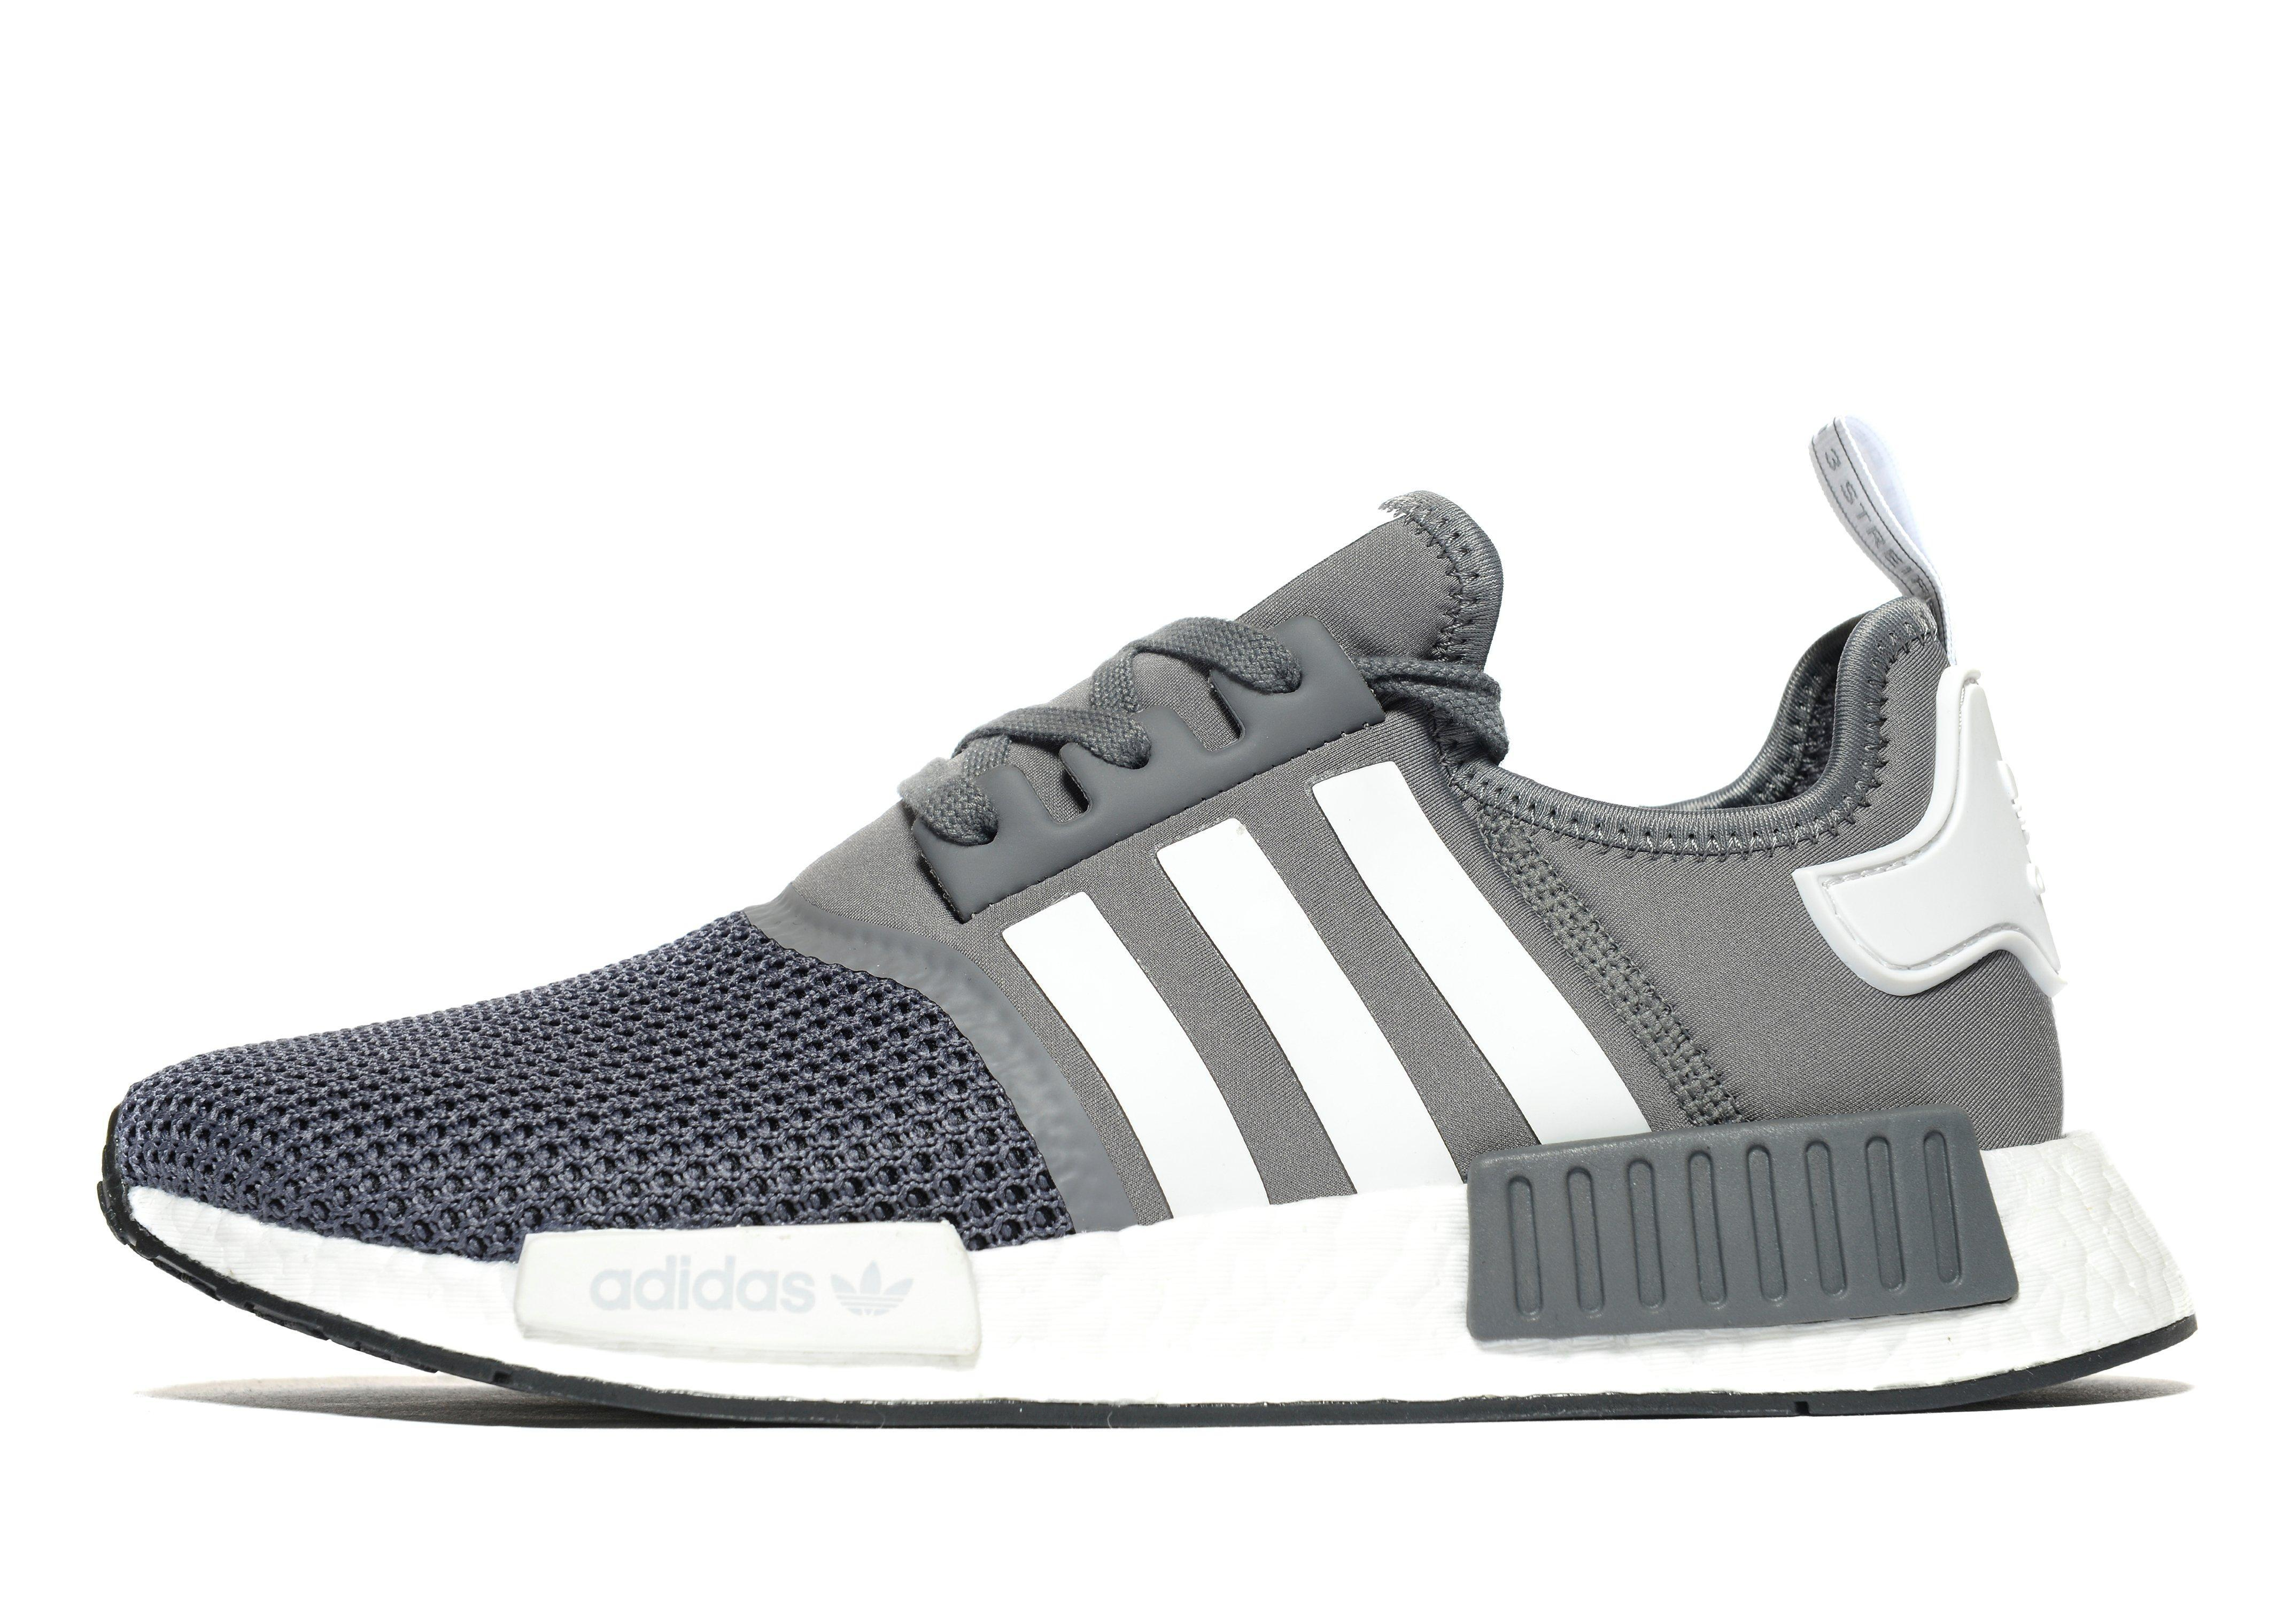 lyst adidas originals nmd r1 in gray for men. Black Bedroom Furniture Sets. Home Design Ideas